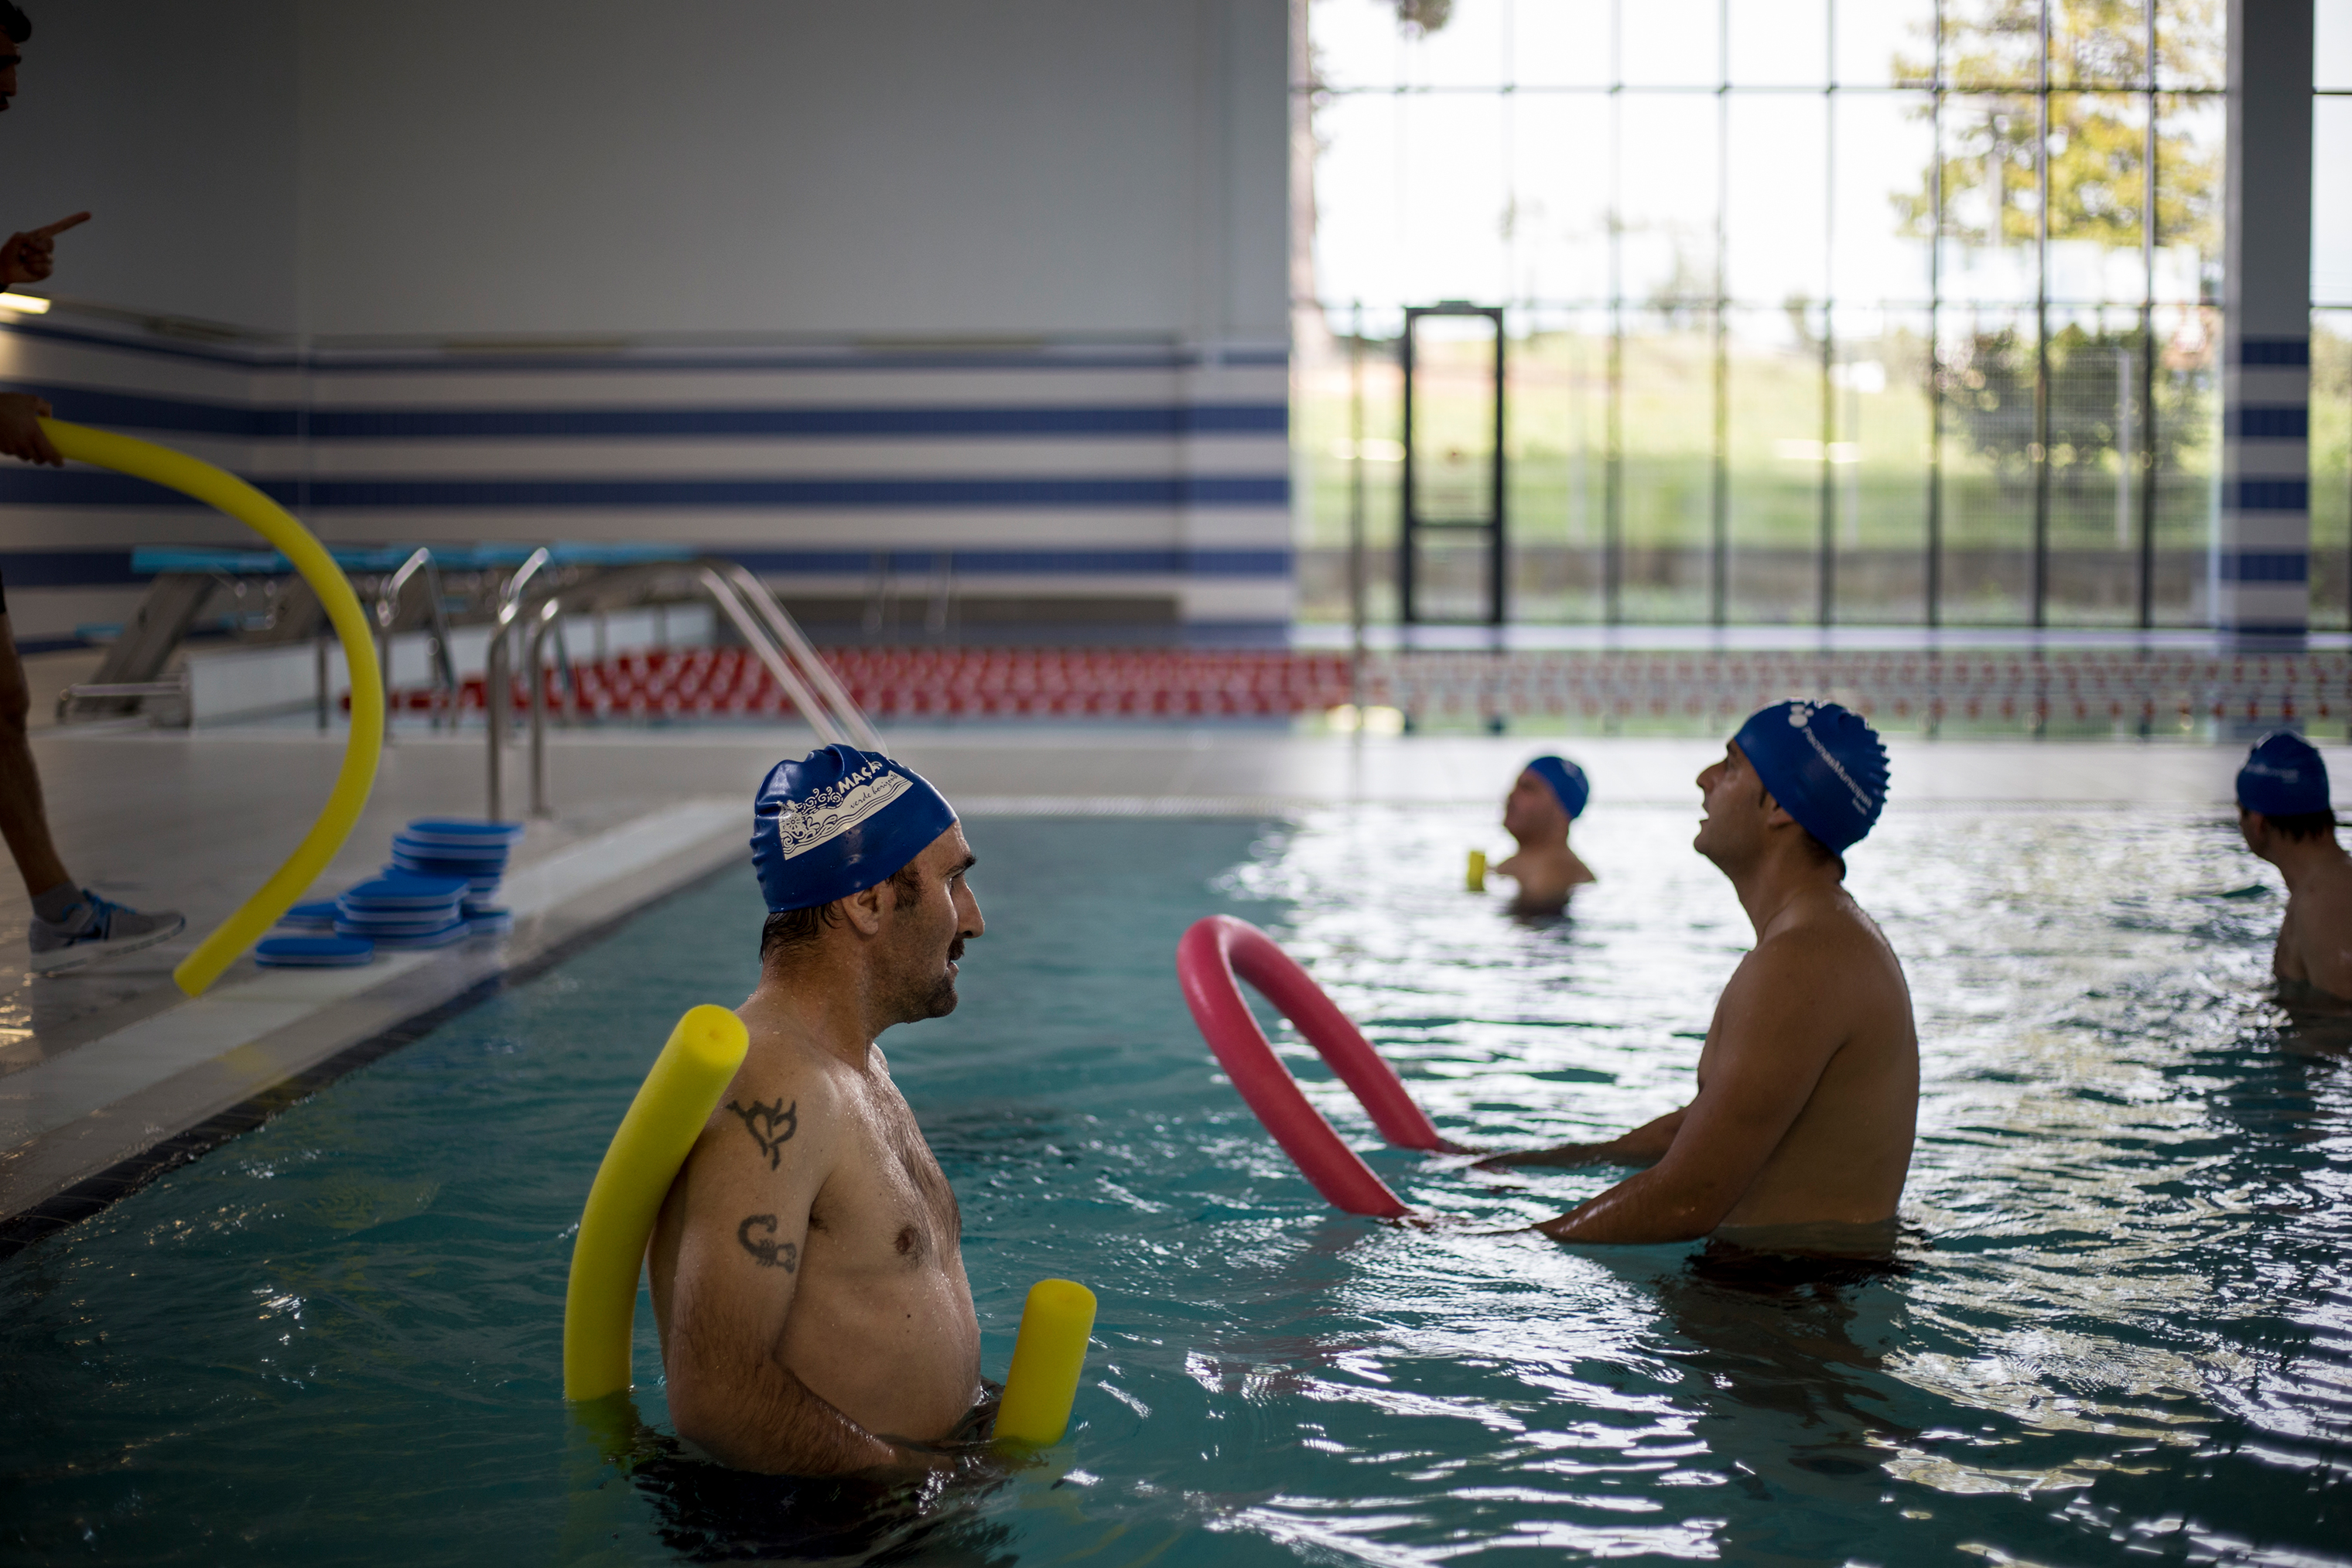 """""""When I got here two months ago I had to undress myself for the medical checkup. The doctor looked at me and said 'You truly are a human skeleton. You got here just in time,'  he recalls, while patting his new formed belly in the locker room before his weekly hydro gymnastics class March 30, 2018."""